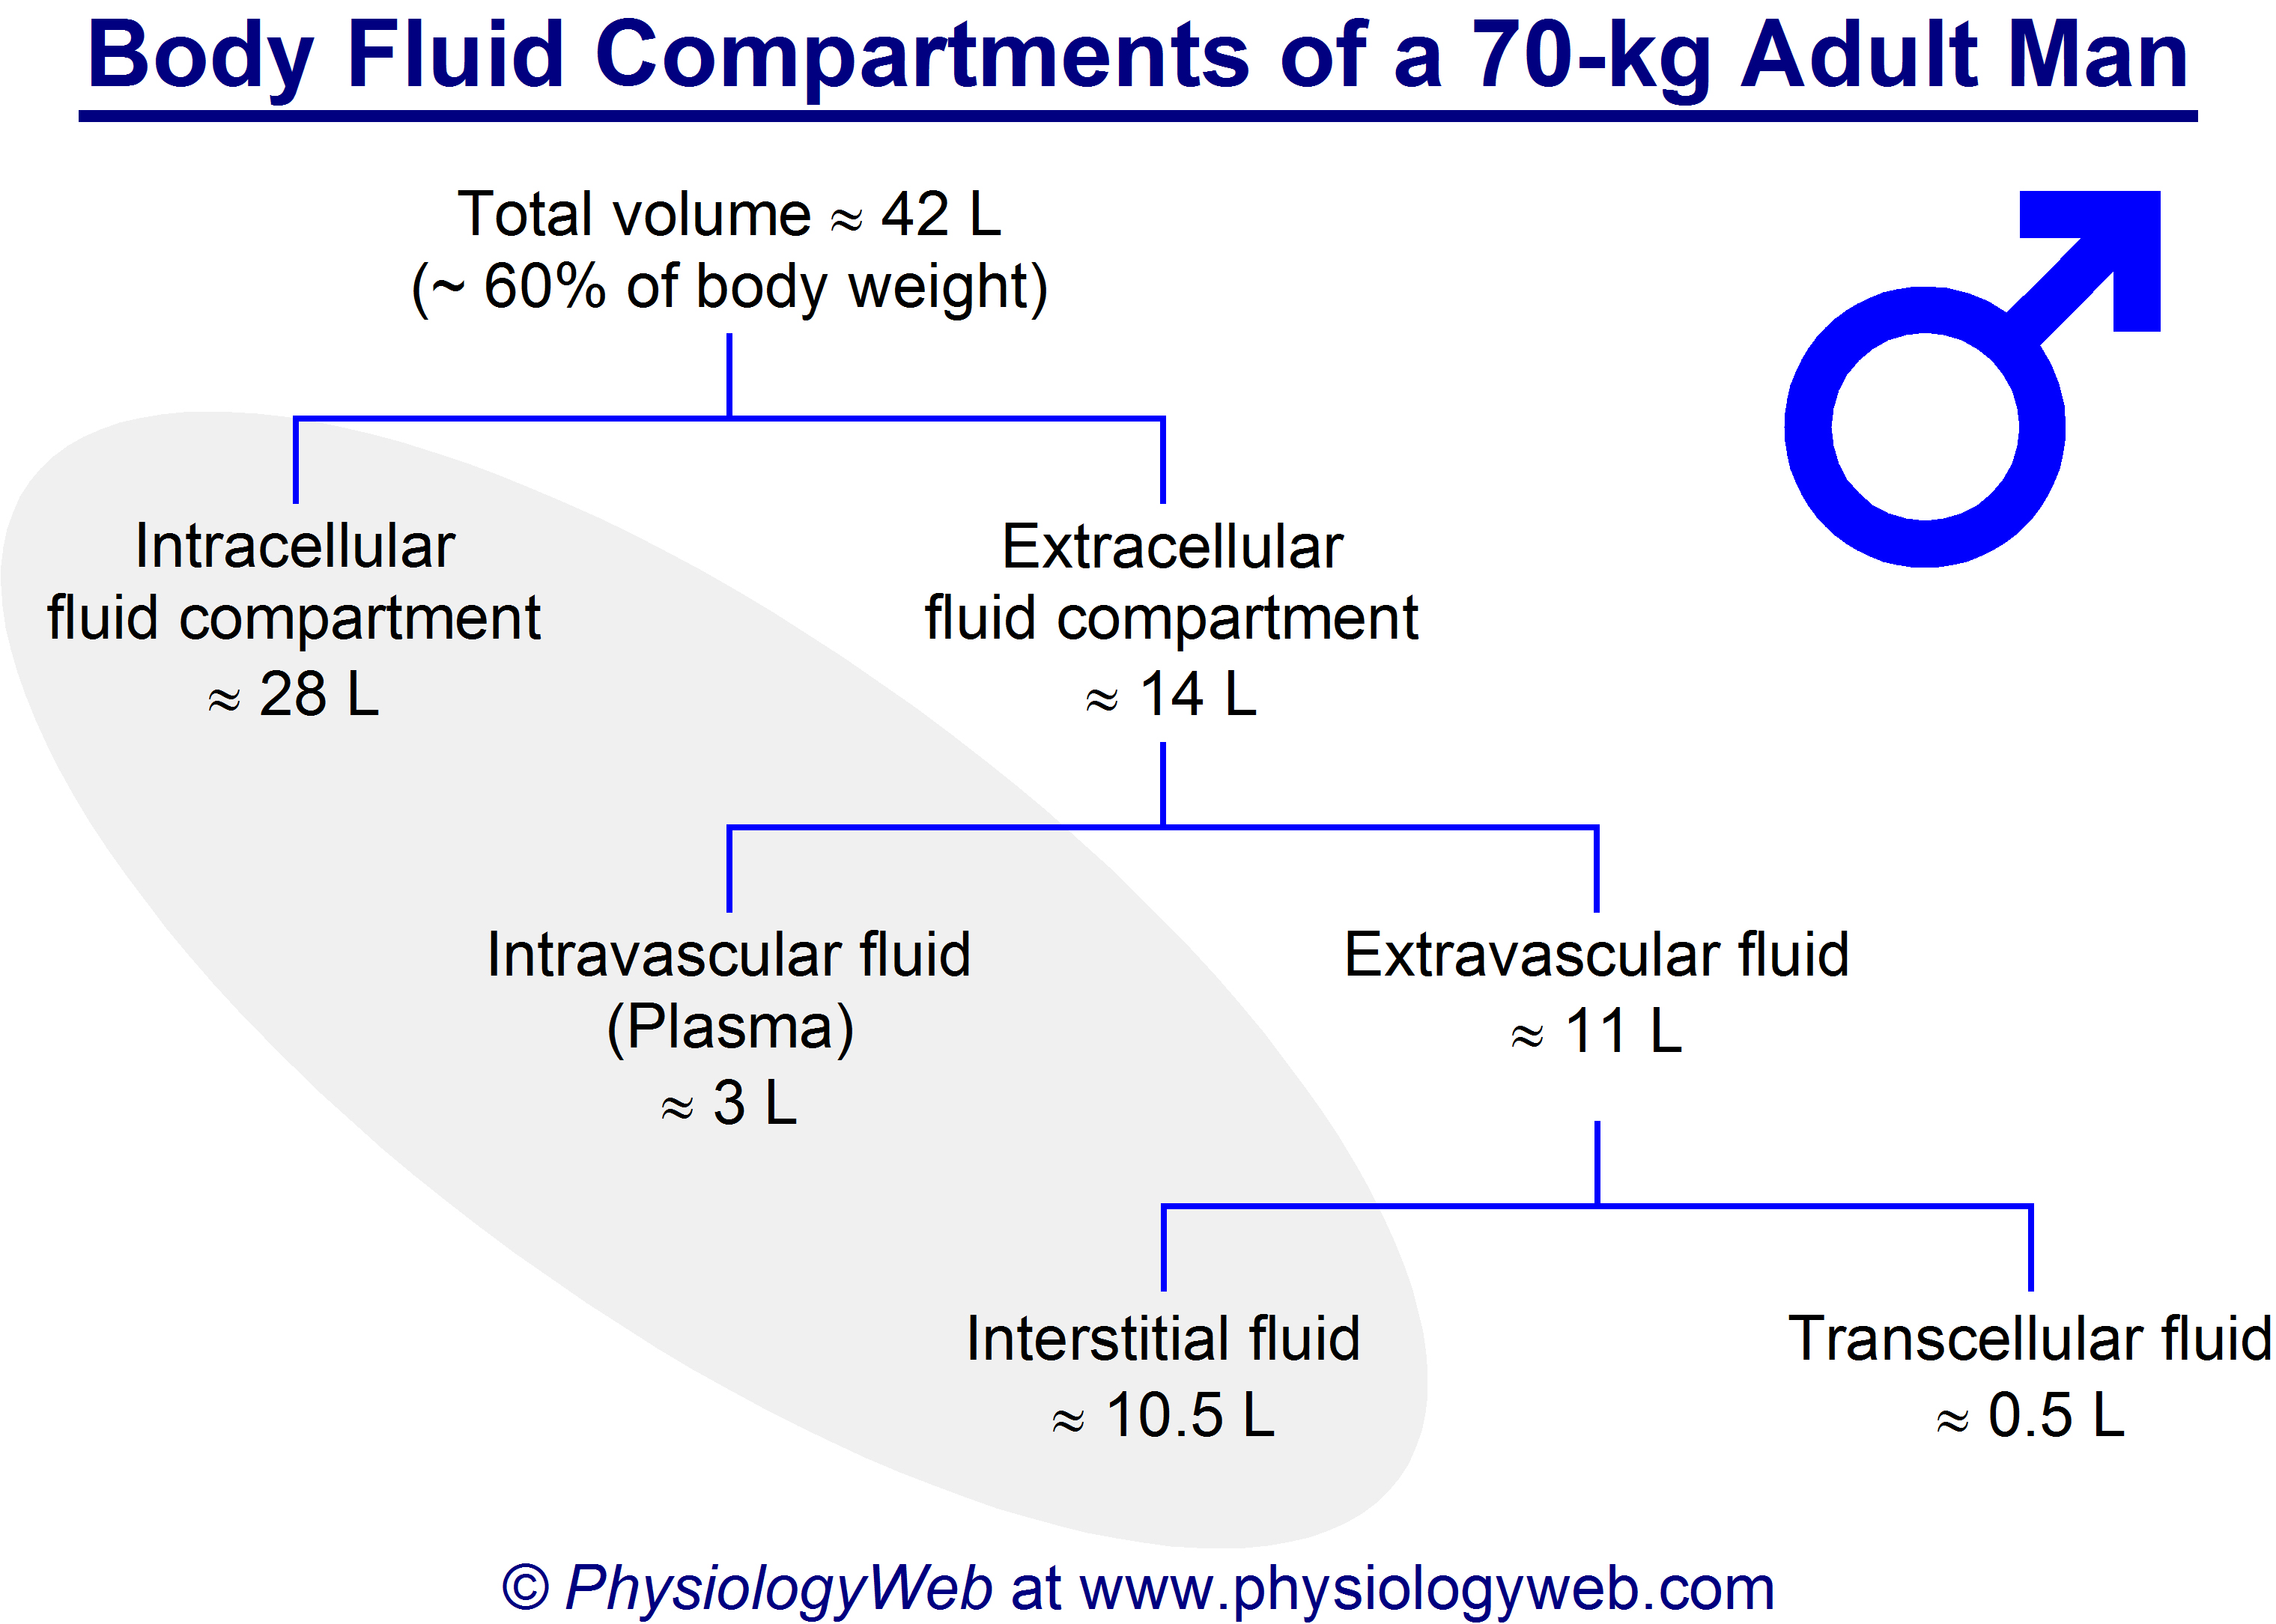 Body fluid compartments of a 70-kg adult man.